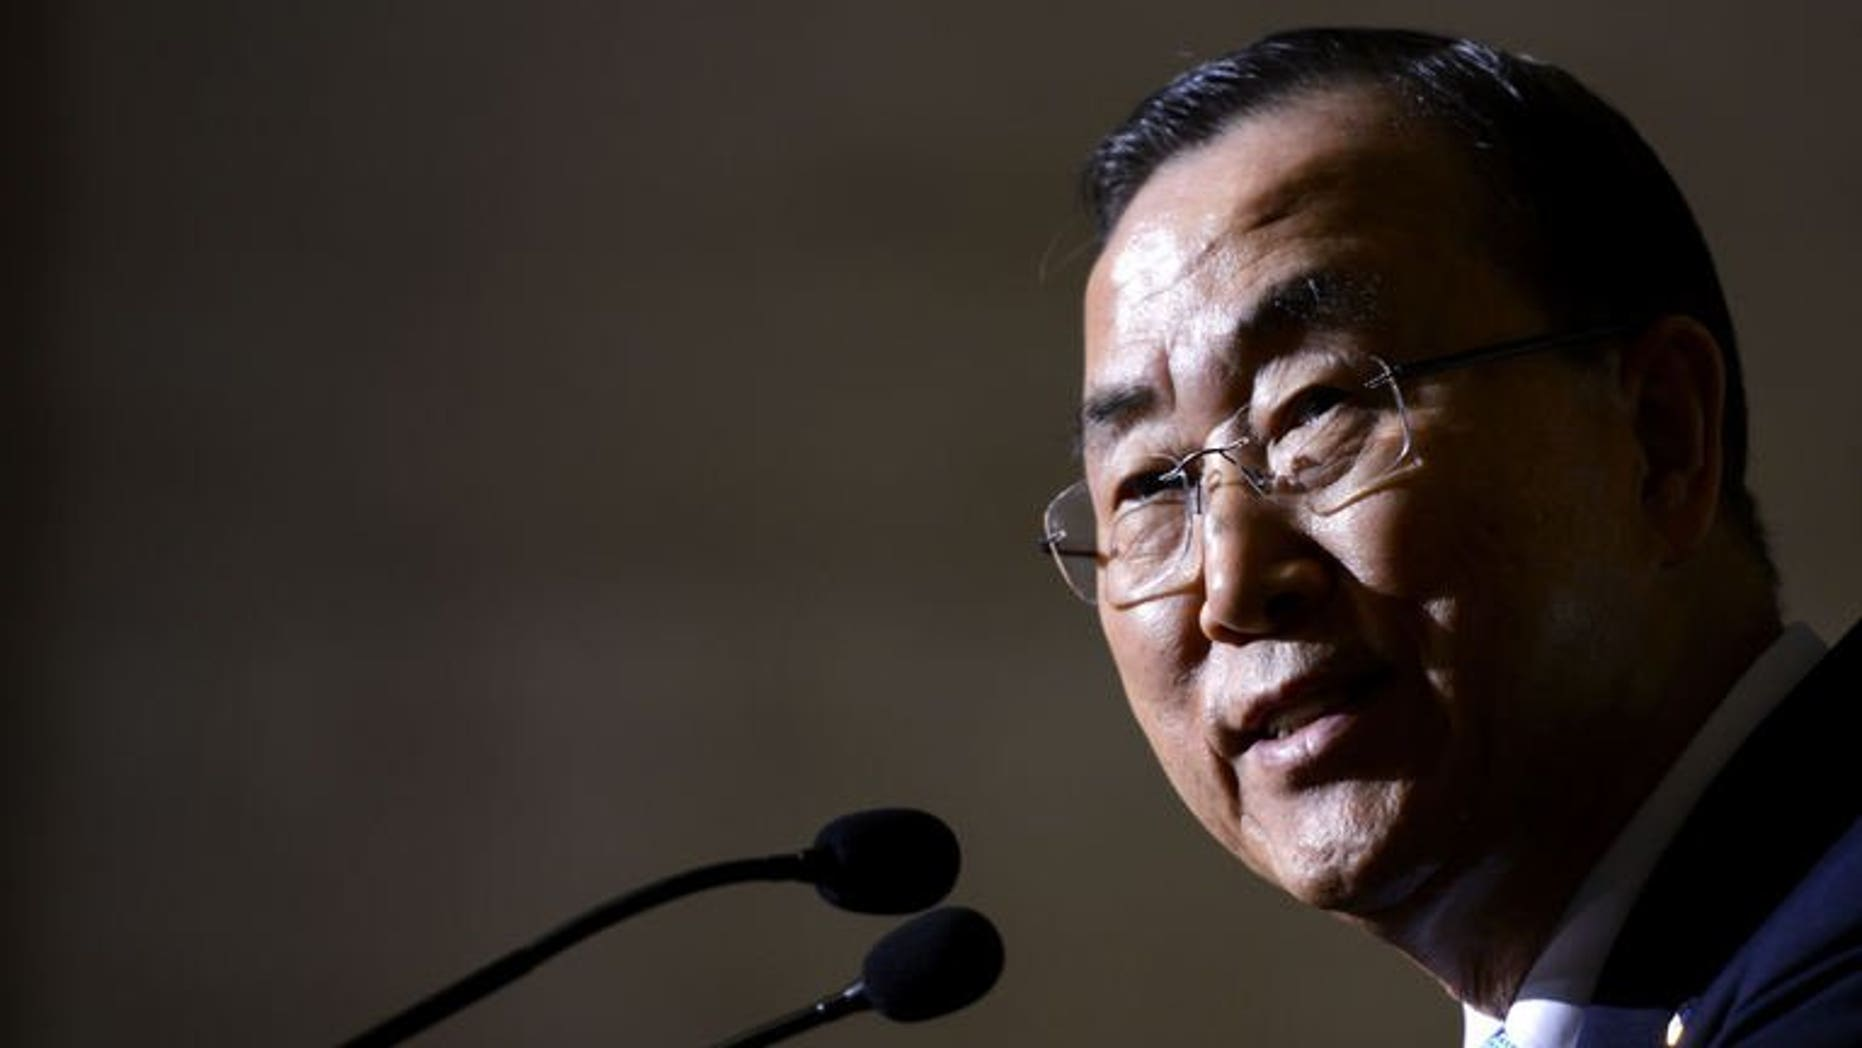 United Nations Secretary-General Ban Ki-moon answers questions during a press conference in Geneva, on July 1, 2013. Ban has expressed concern about sexual violence used against female protestors in Egypt, where millions have taken to the streets to demand the ouster of President Mohamed Morsi.